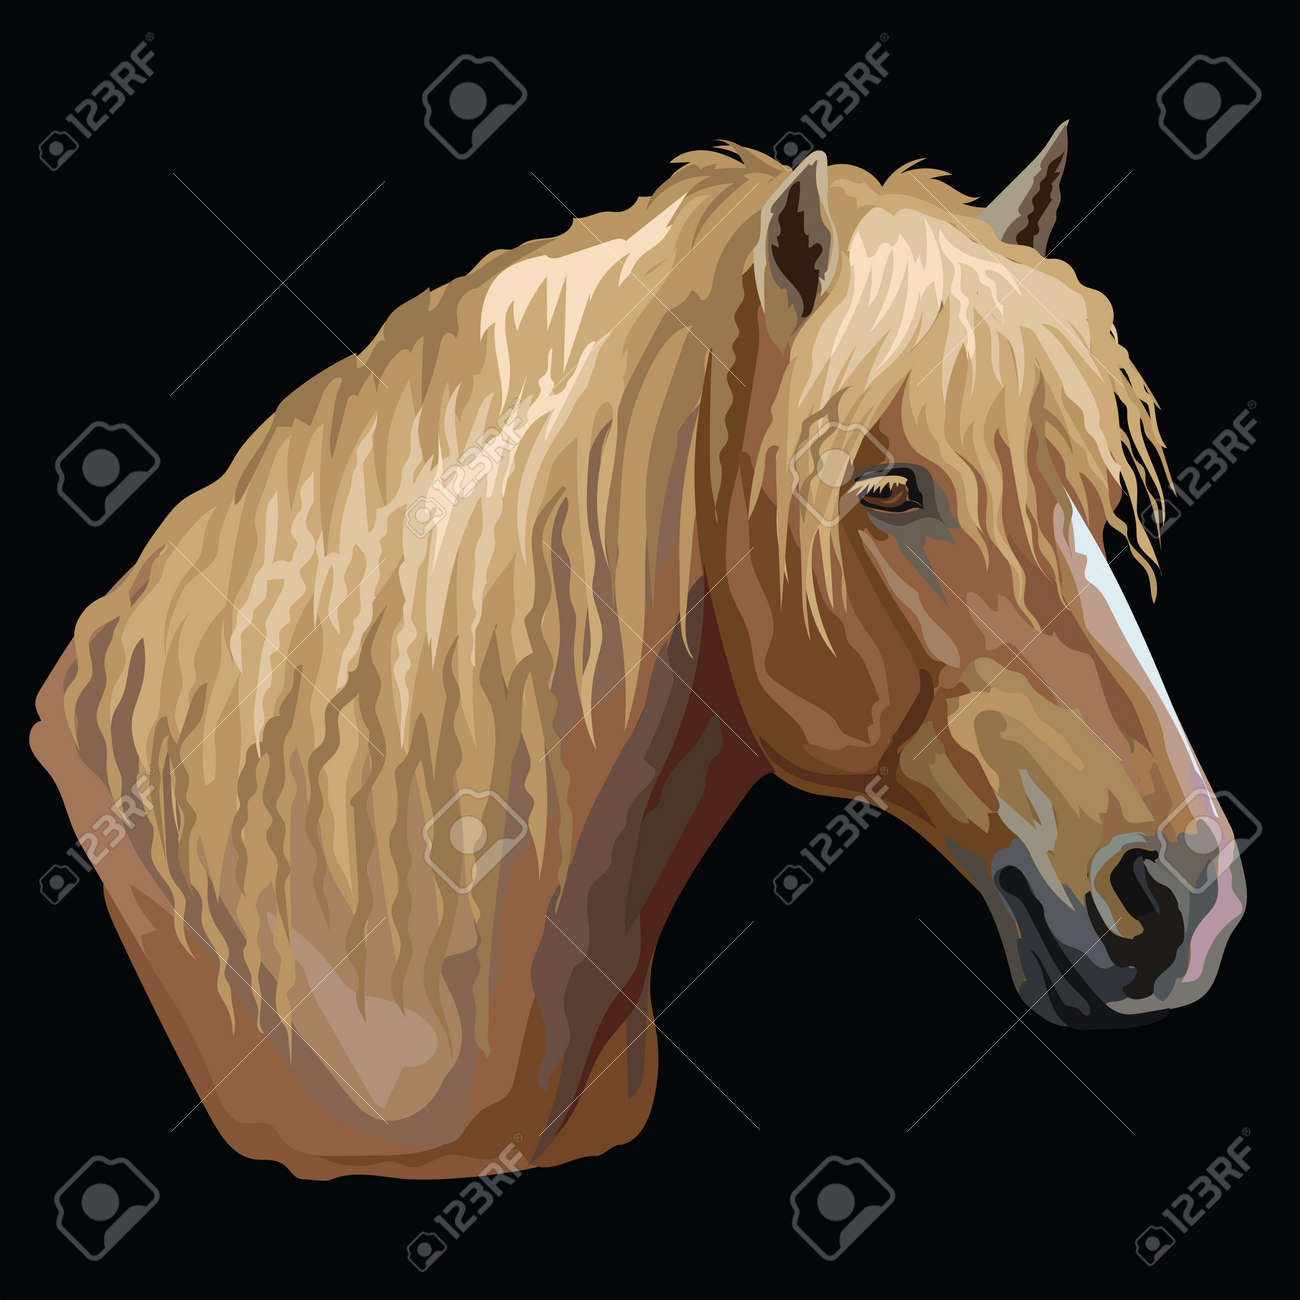 Colorful Portrait Of Russian Heavy Draft Horse Horse Head In Royalty Free Cliparts Vectors And Stock Illustration Image 119455145